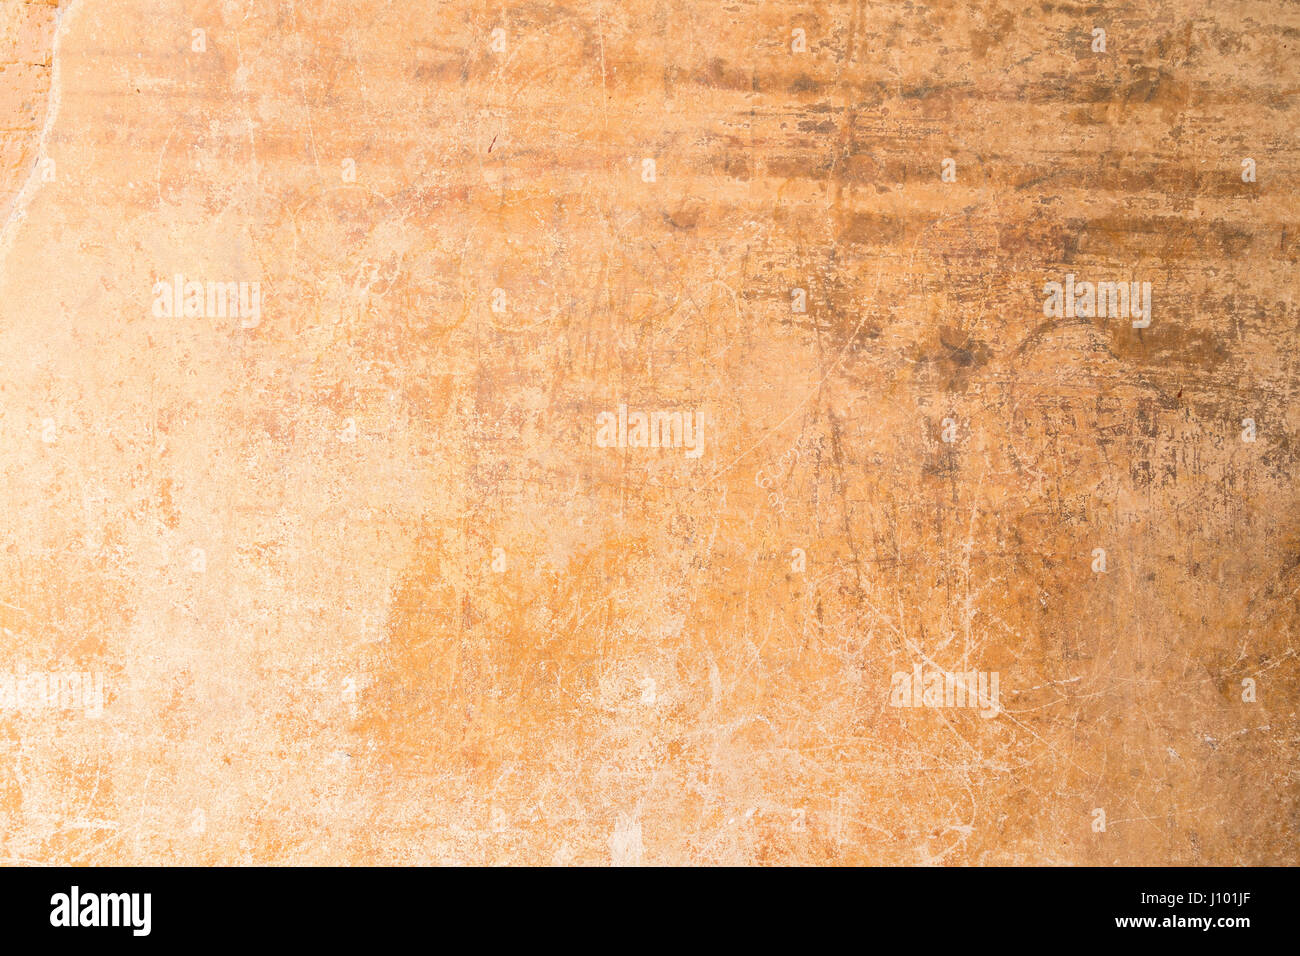 Weathered, aged and scratched orange concrete wall texture background. - Stock Image